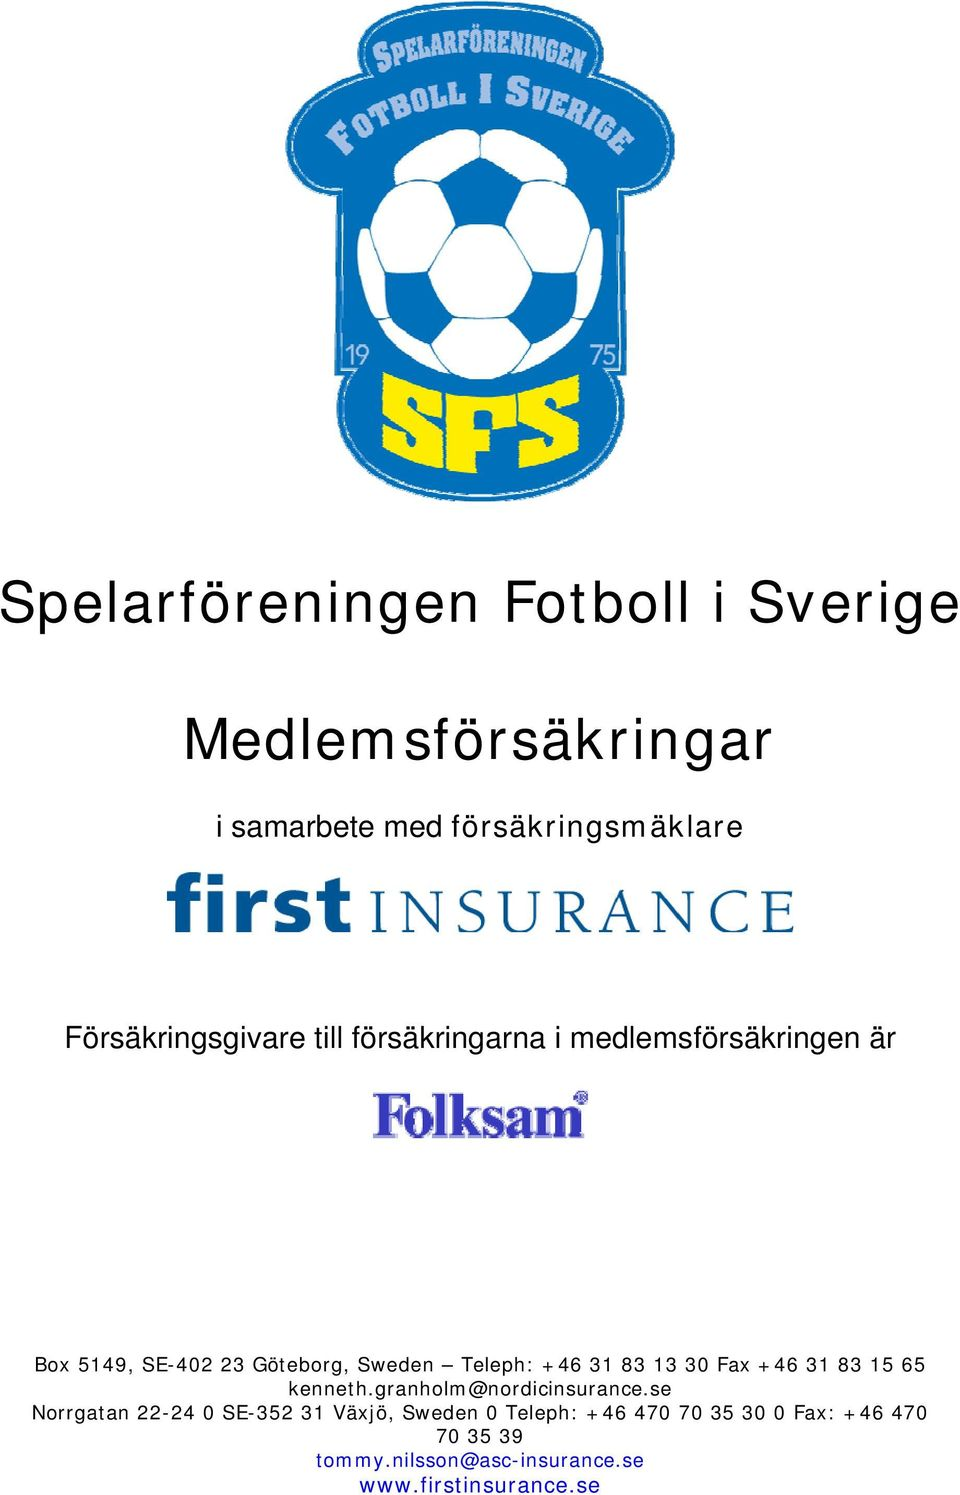 Teleph: +46 31 83 13 30 Fax +46 31 83 15 65 kenneth.granholm@nordicinsurance.